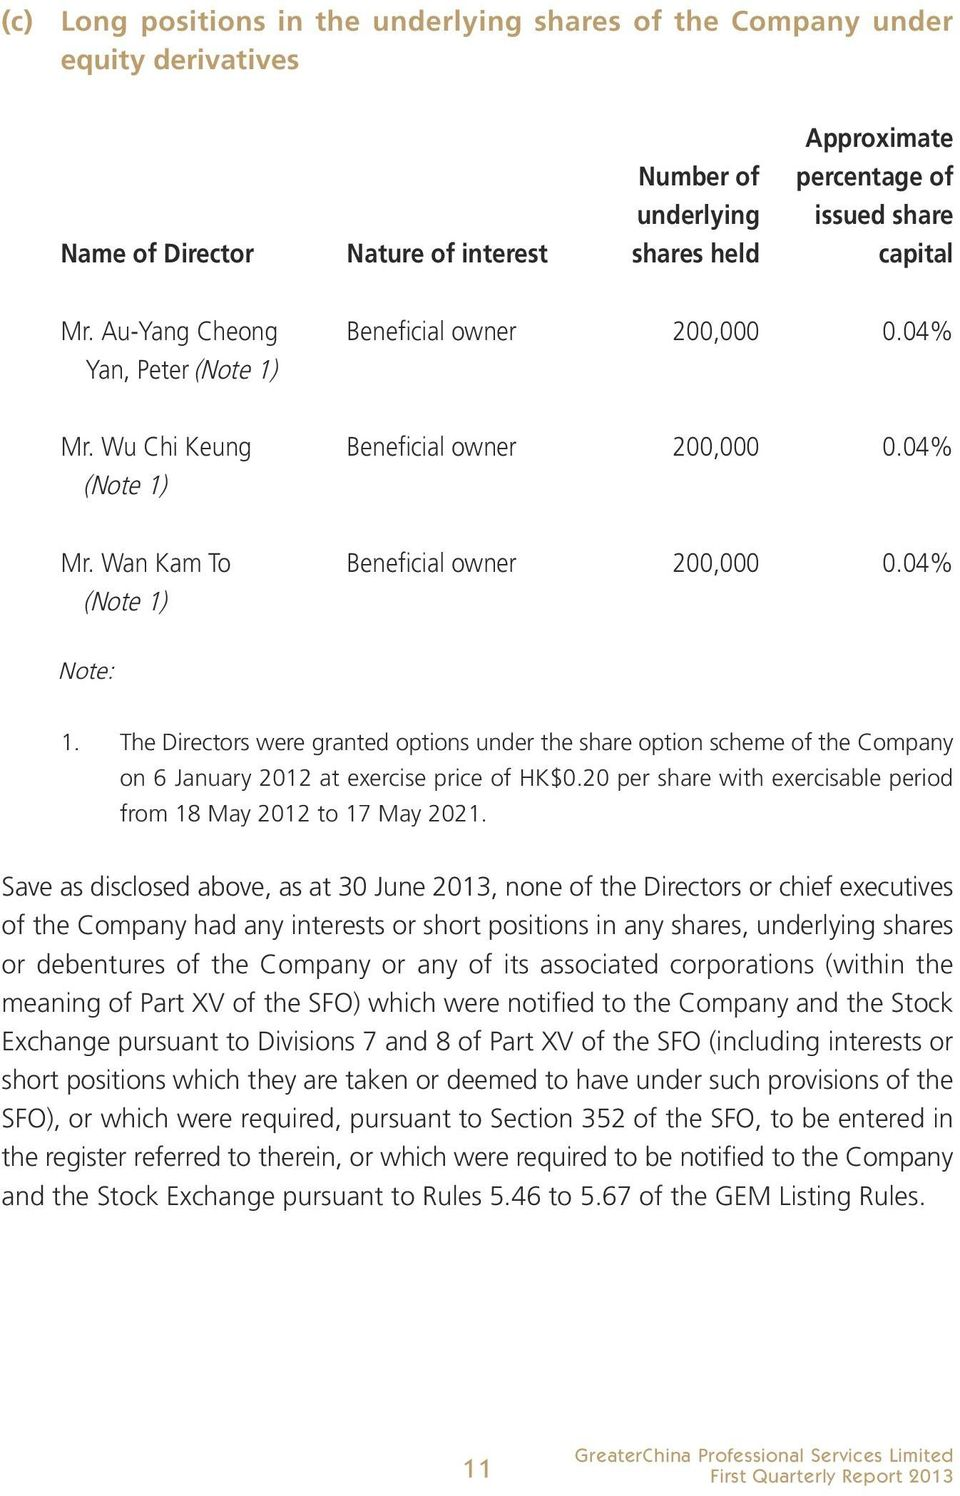 The Directors were granted options under the share option scheme of the Company on 6 January 2012 at exercise price of HK$0.20 per share with exercisable period from 18 May 2012 to 17 May 2021.